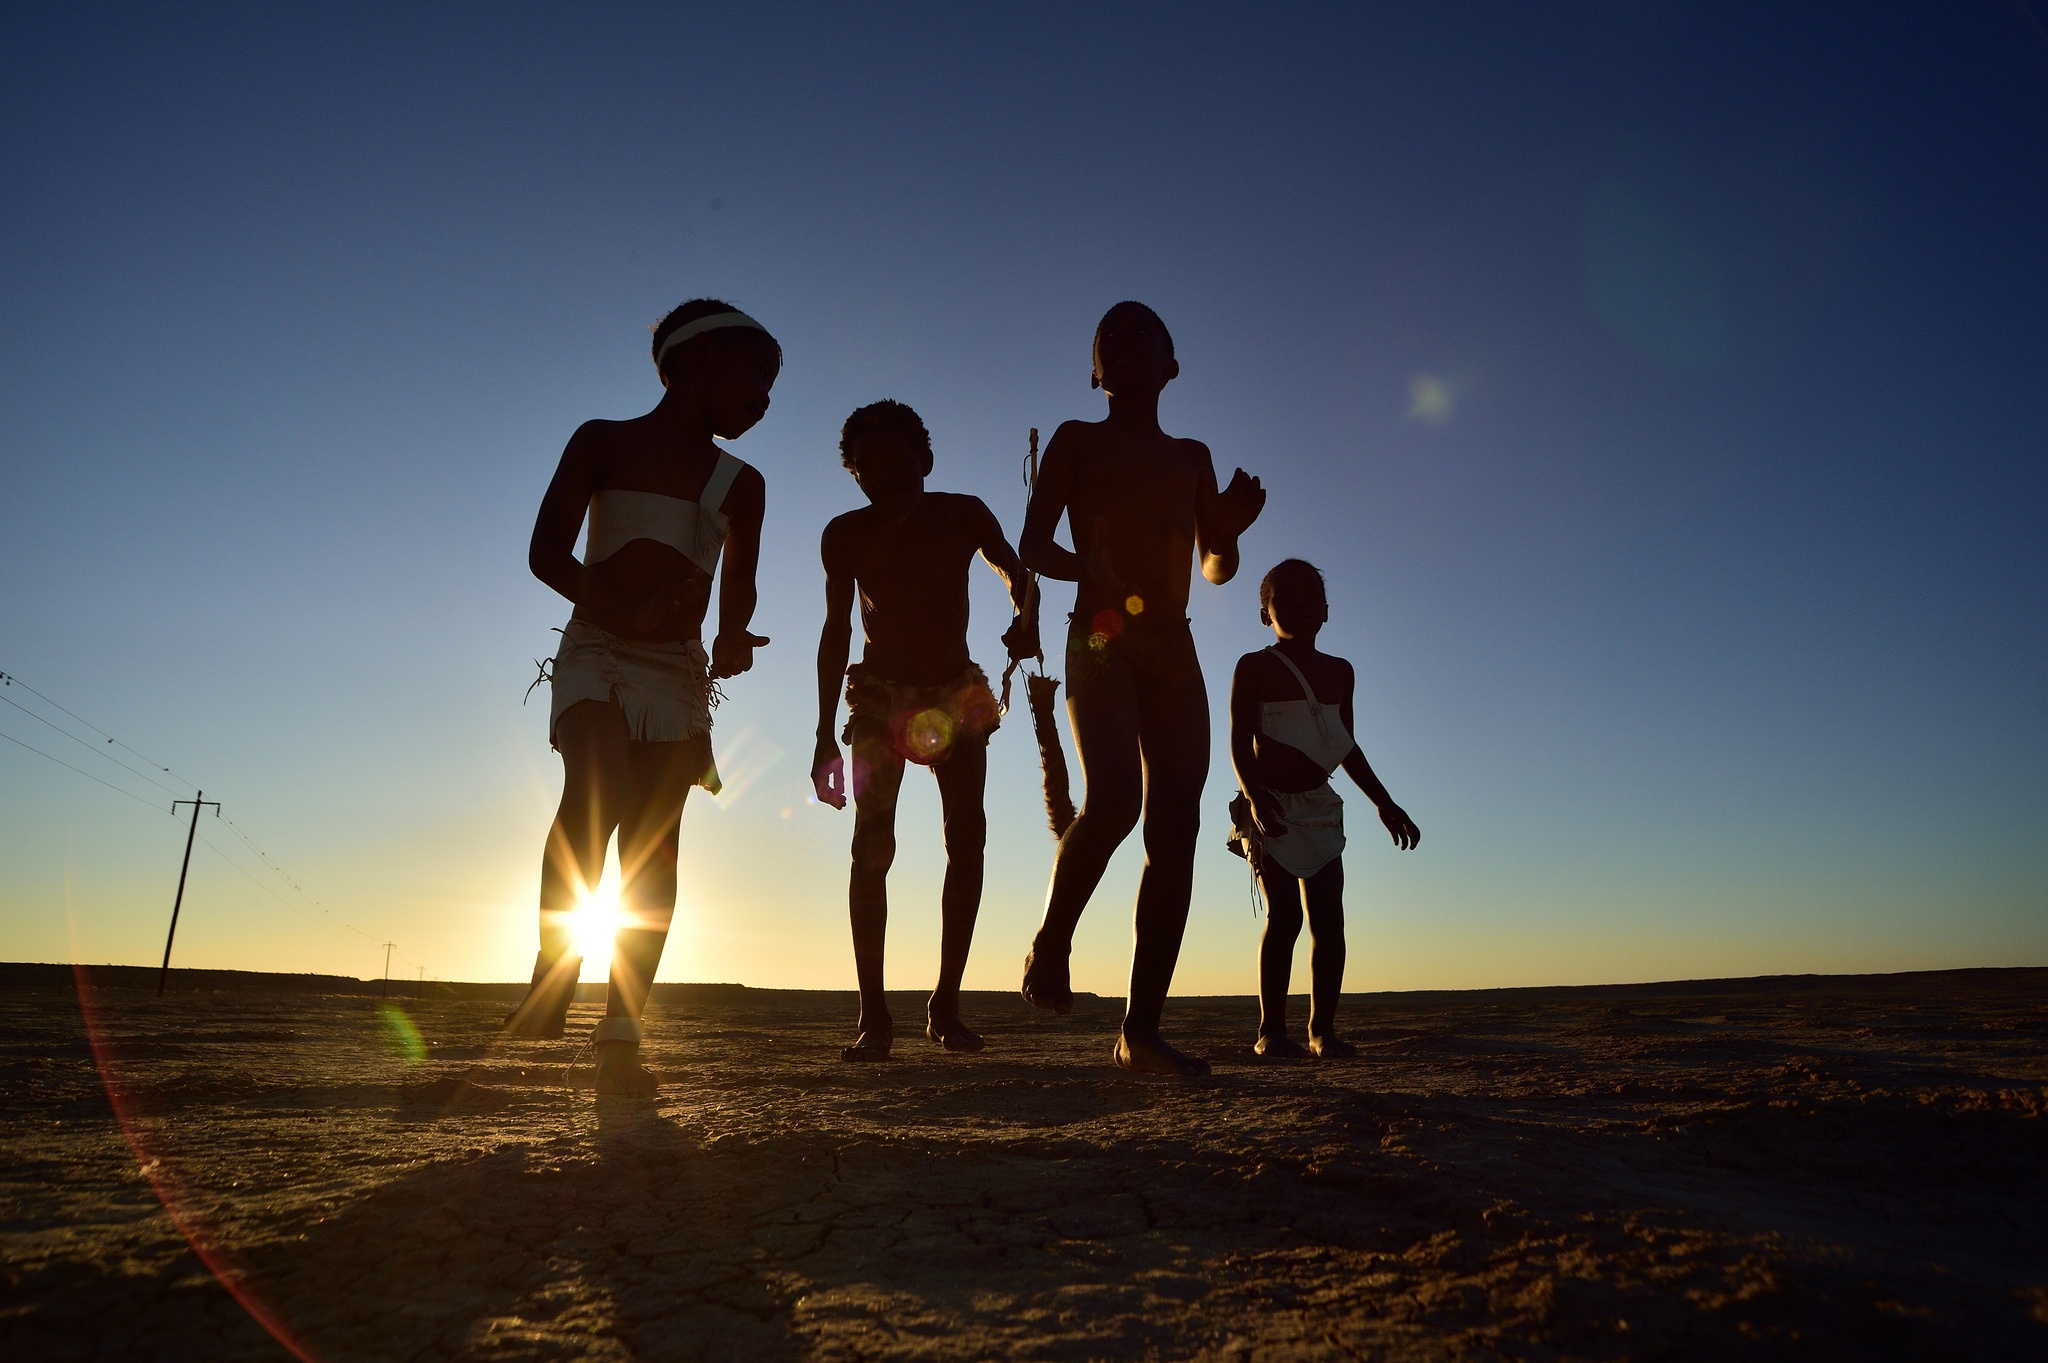 Khoisan Children